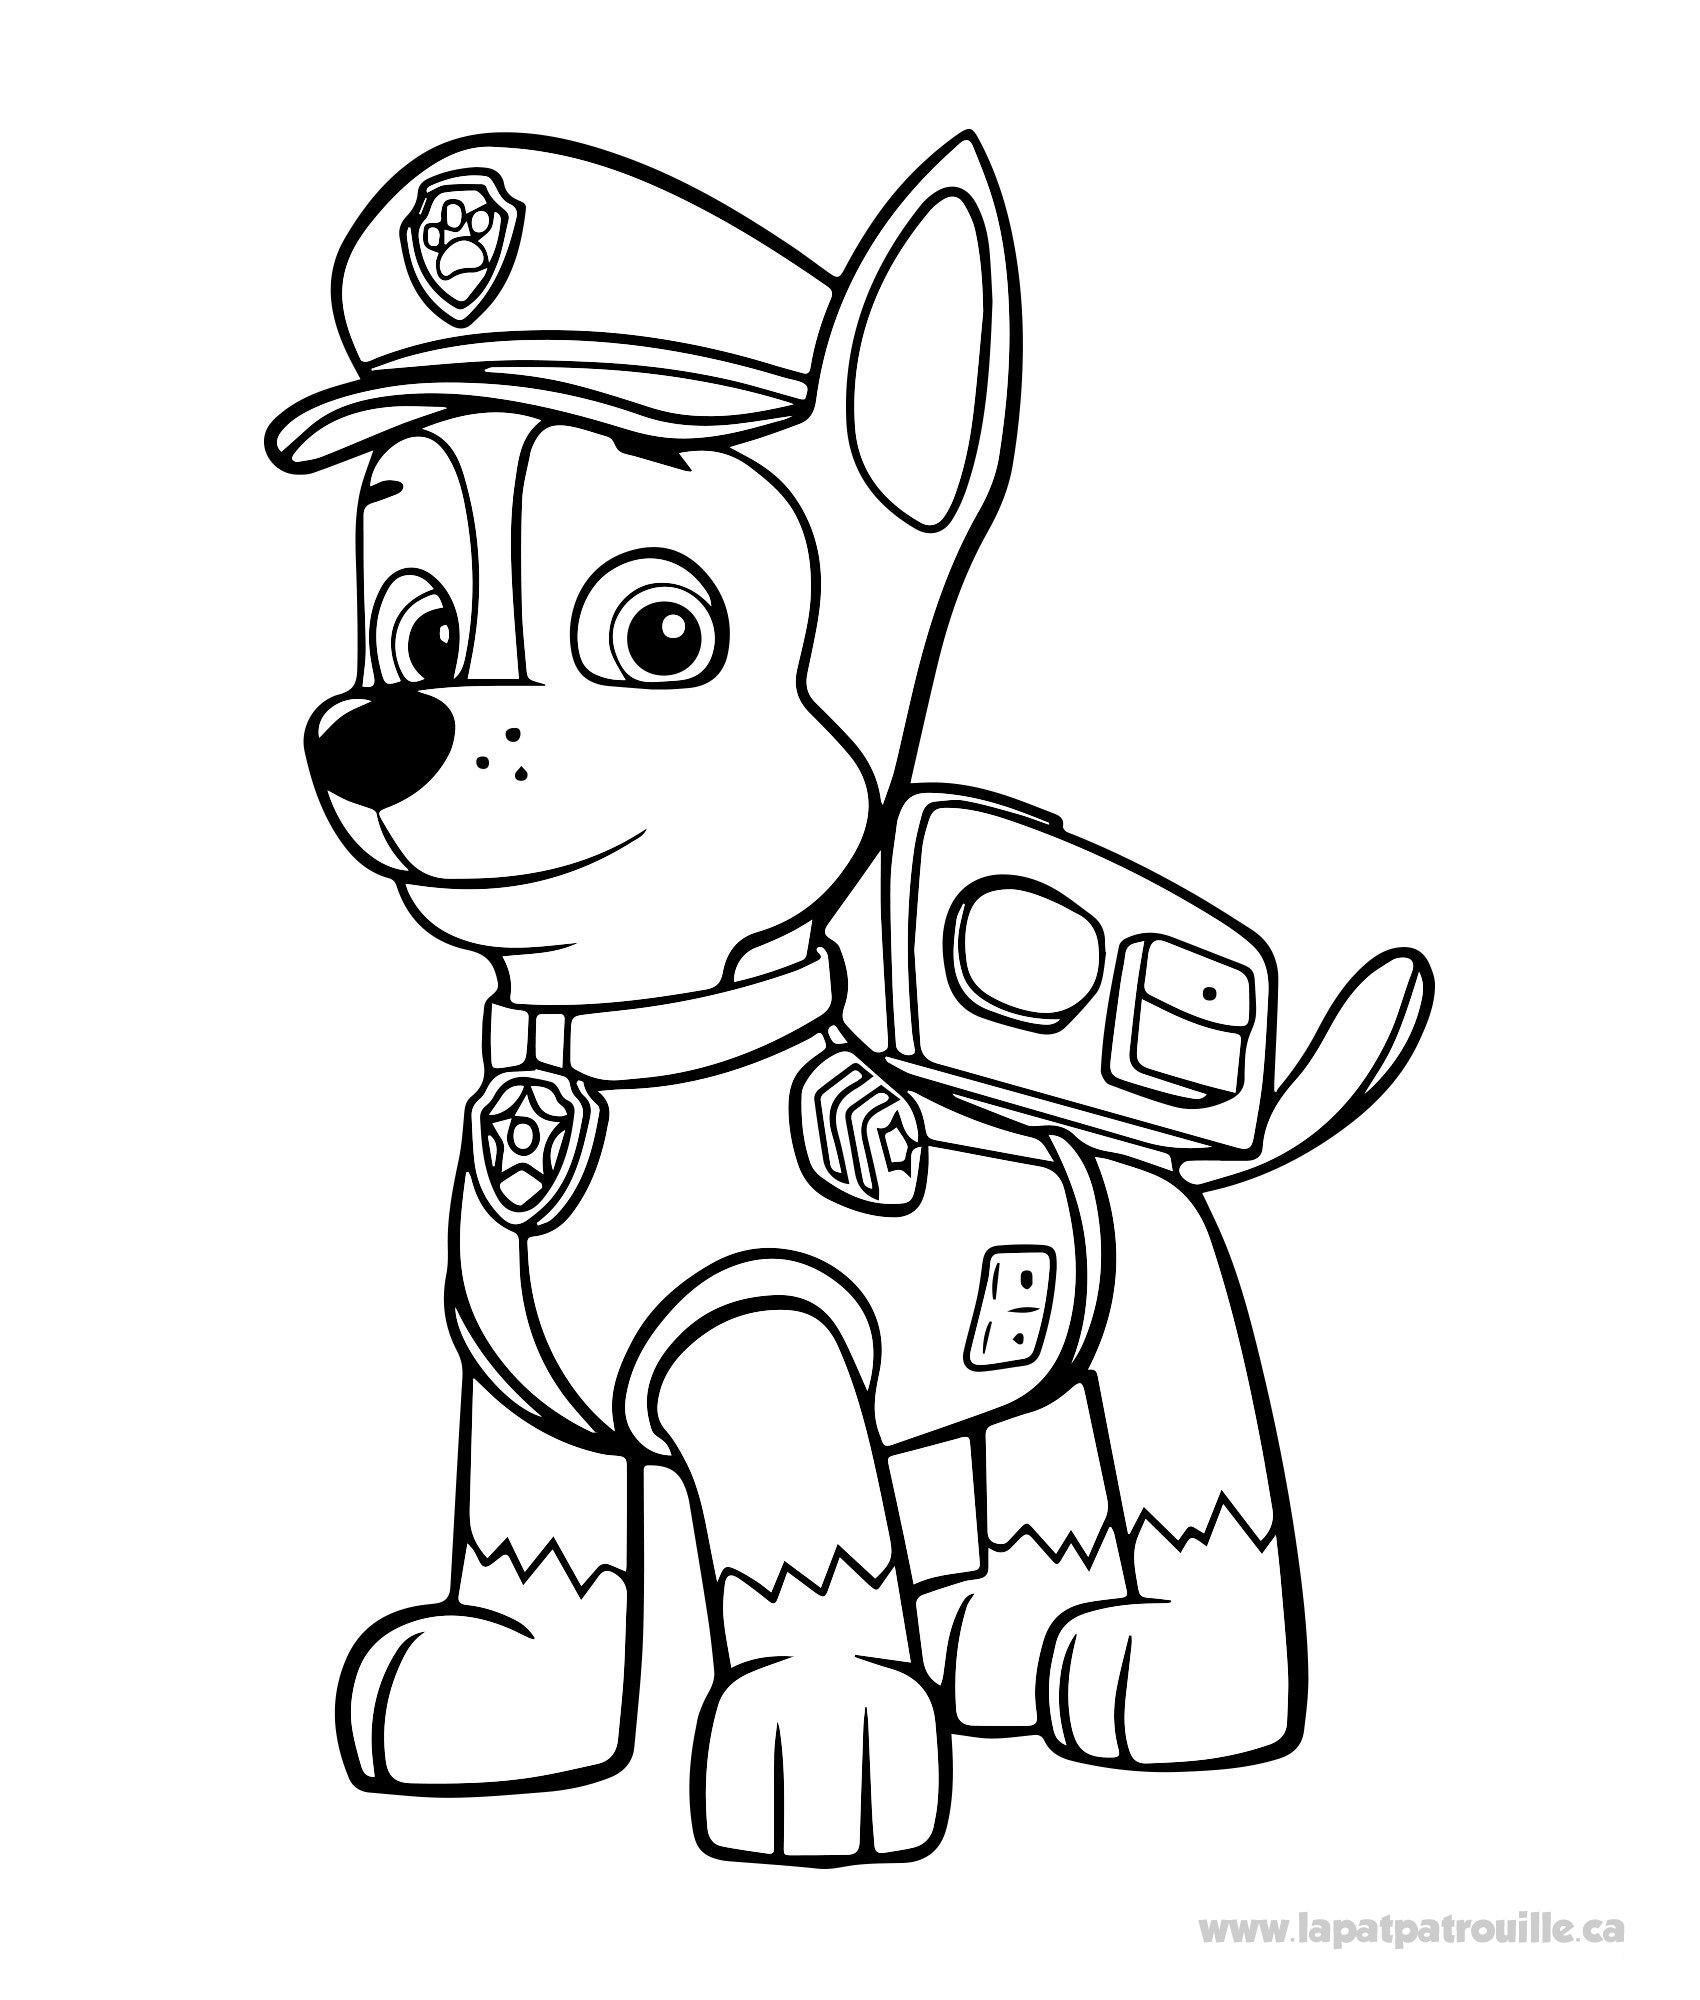 Idee 14 Pat Patrouille Coloriage Chase Coloriage Pat Patrouille Coloriage Paw Patrol Dessin Pat Patrouille